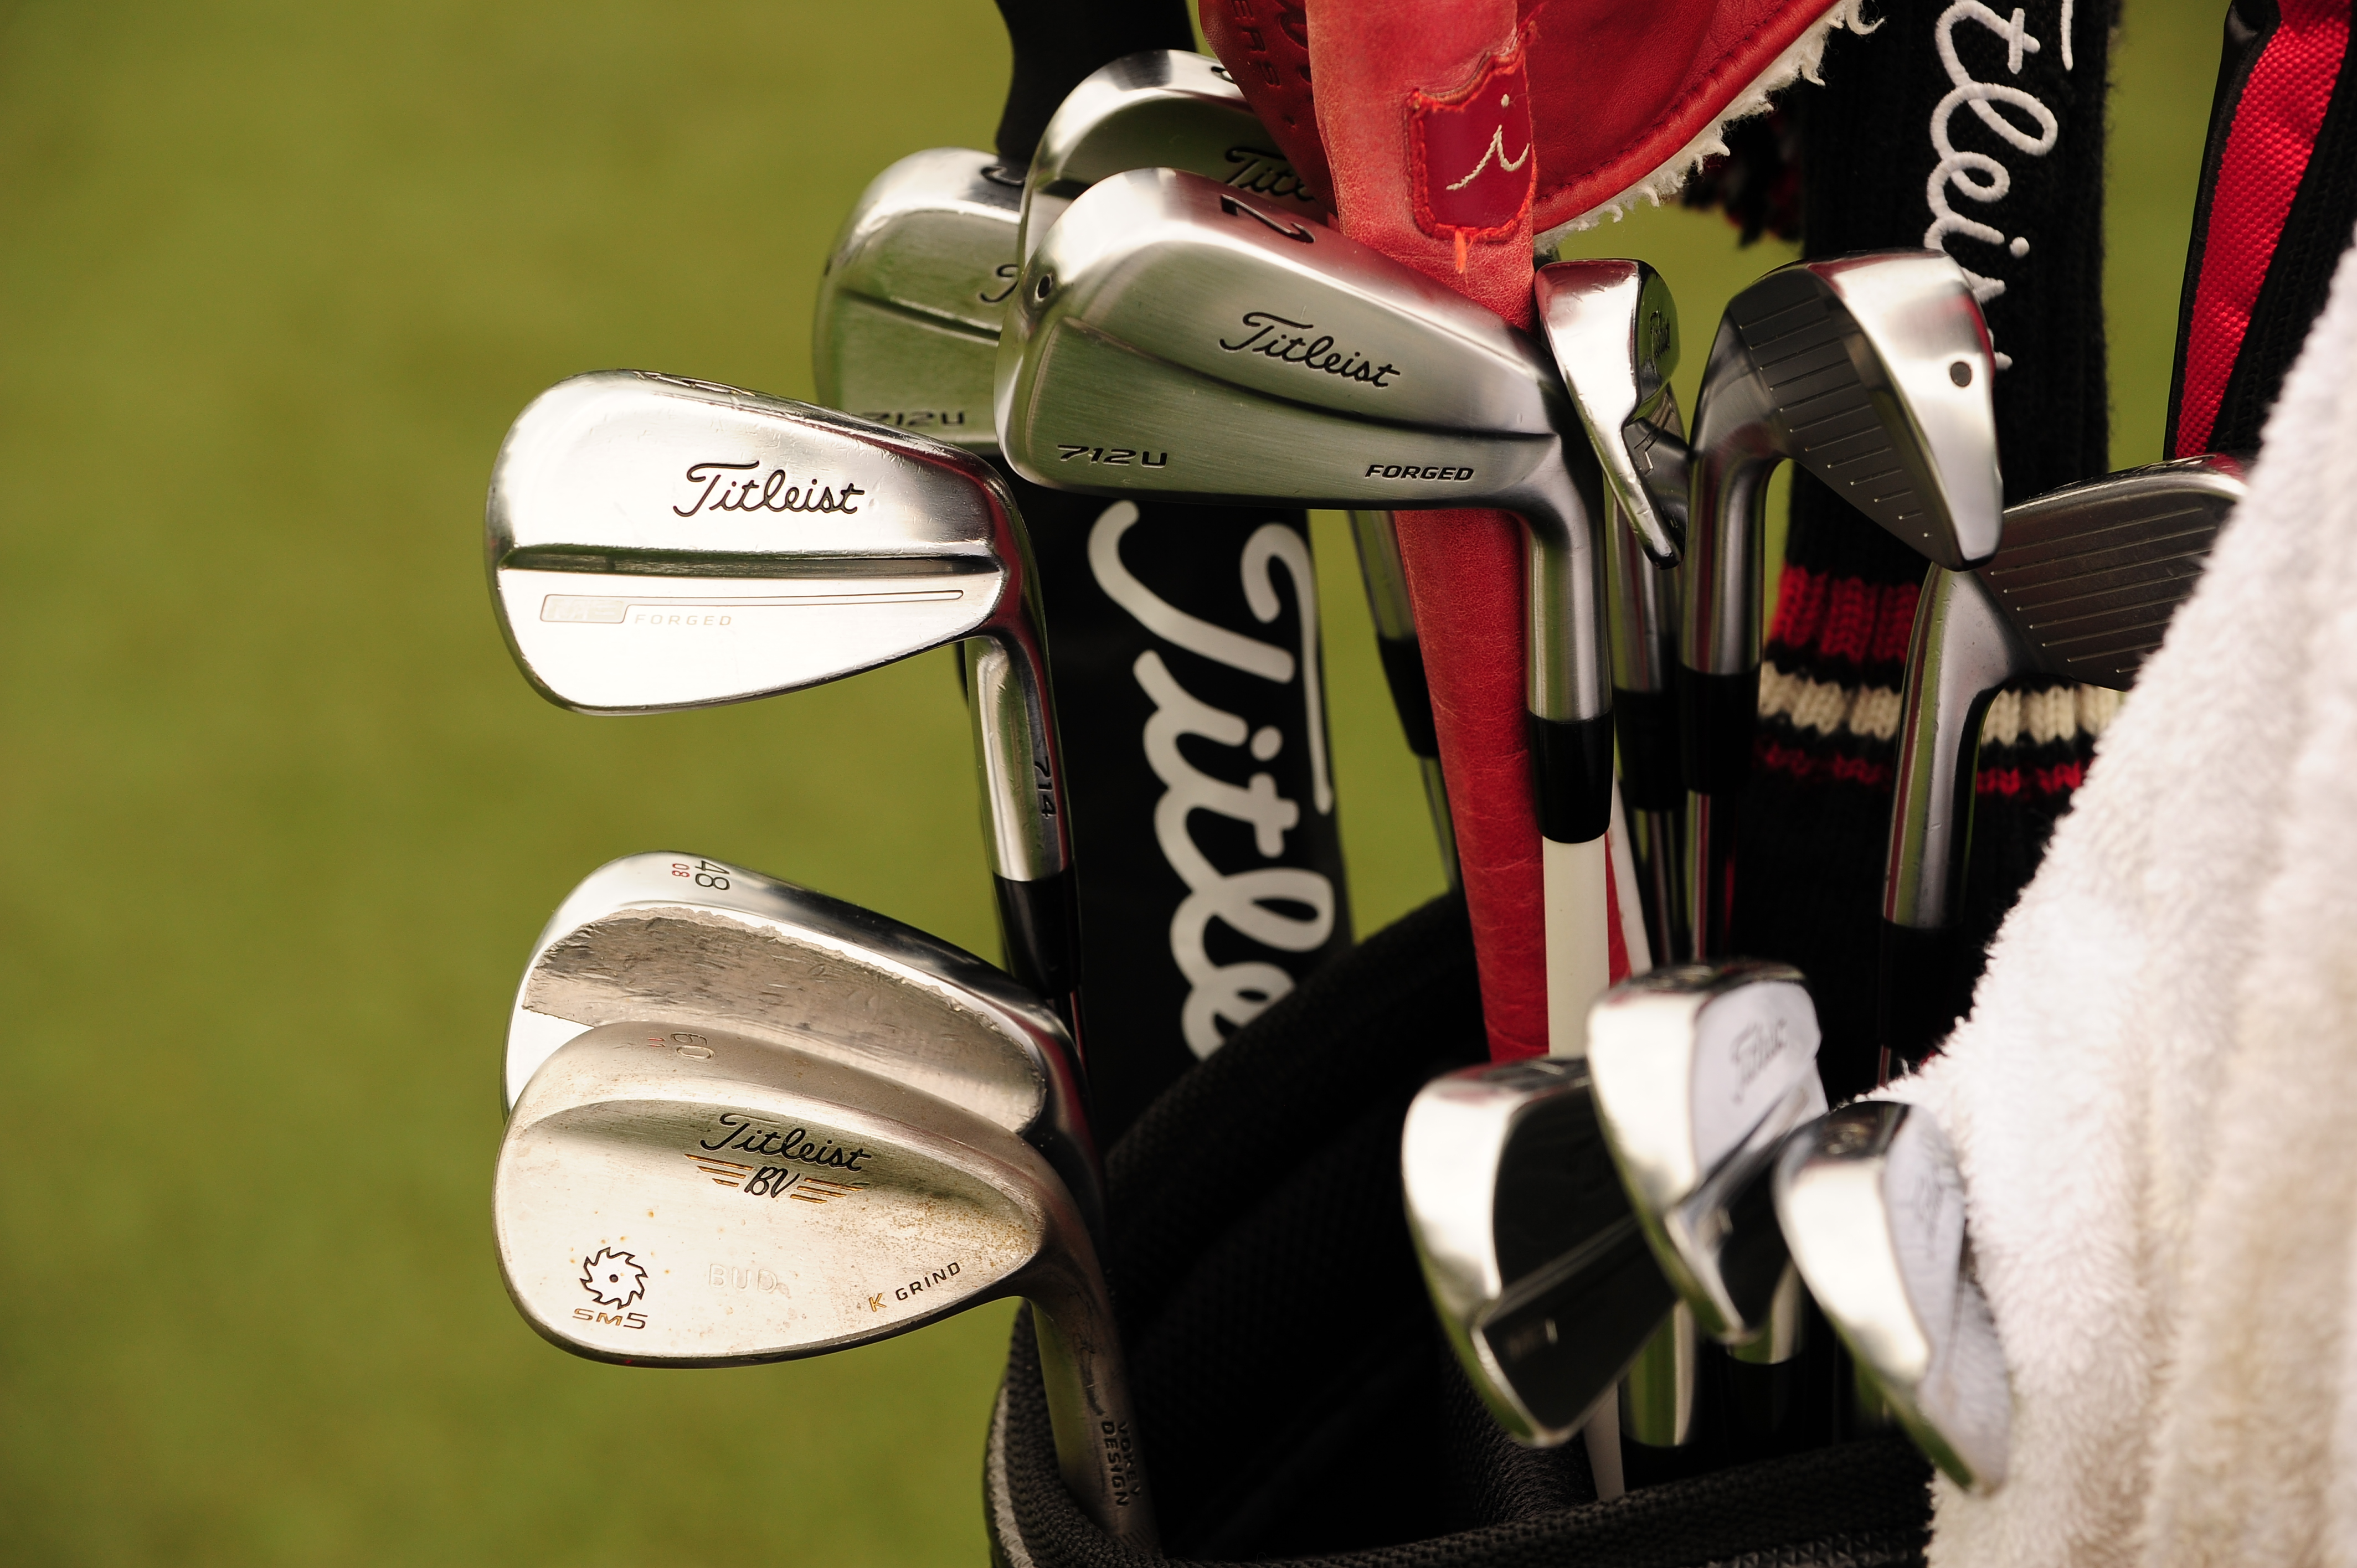 Another Titleist guy, Bud Cauley plays MB Forged irons, Vokey SM5 K grind wedges, and a 712U driving iron.